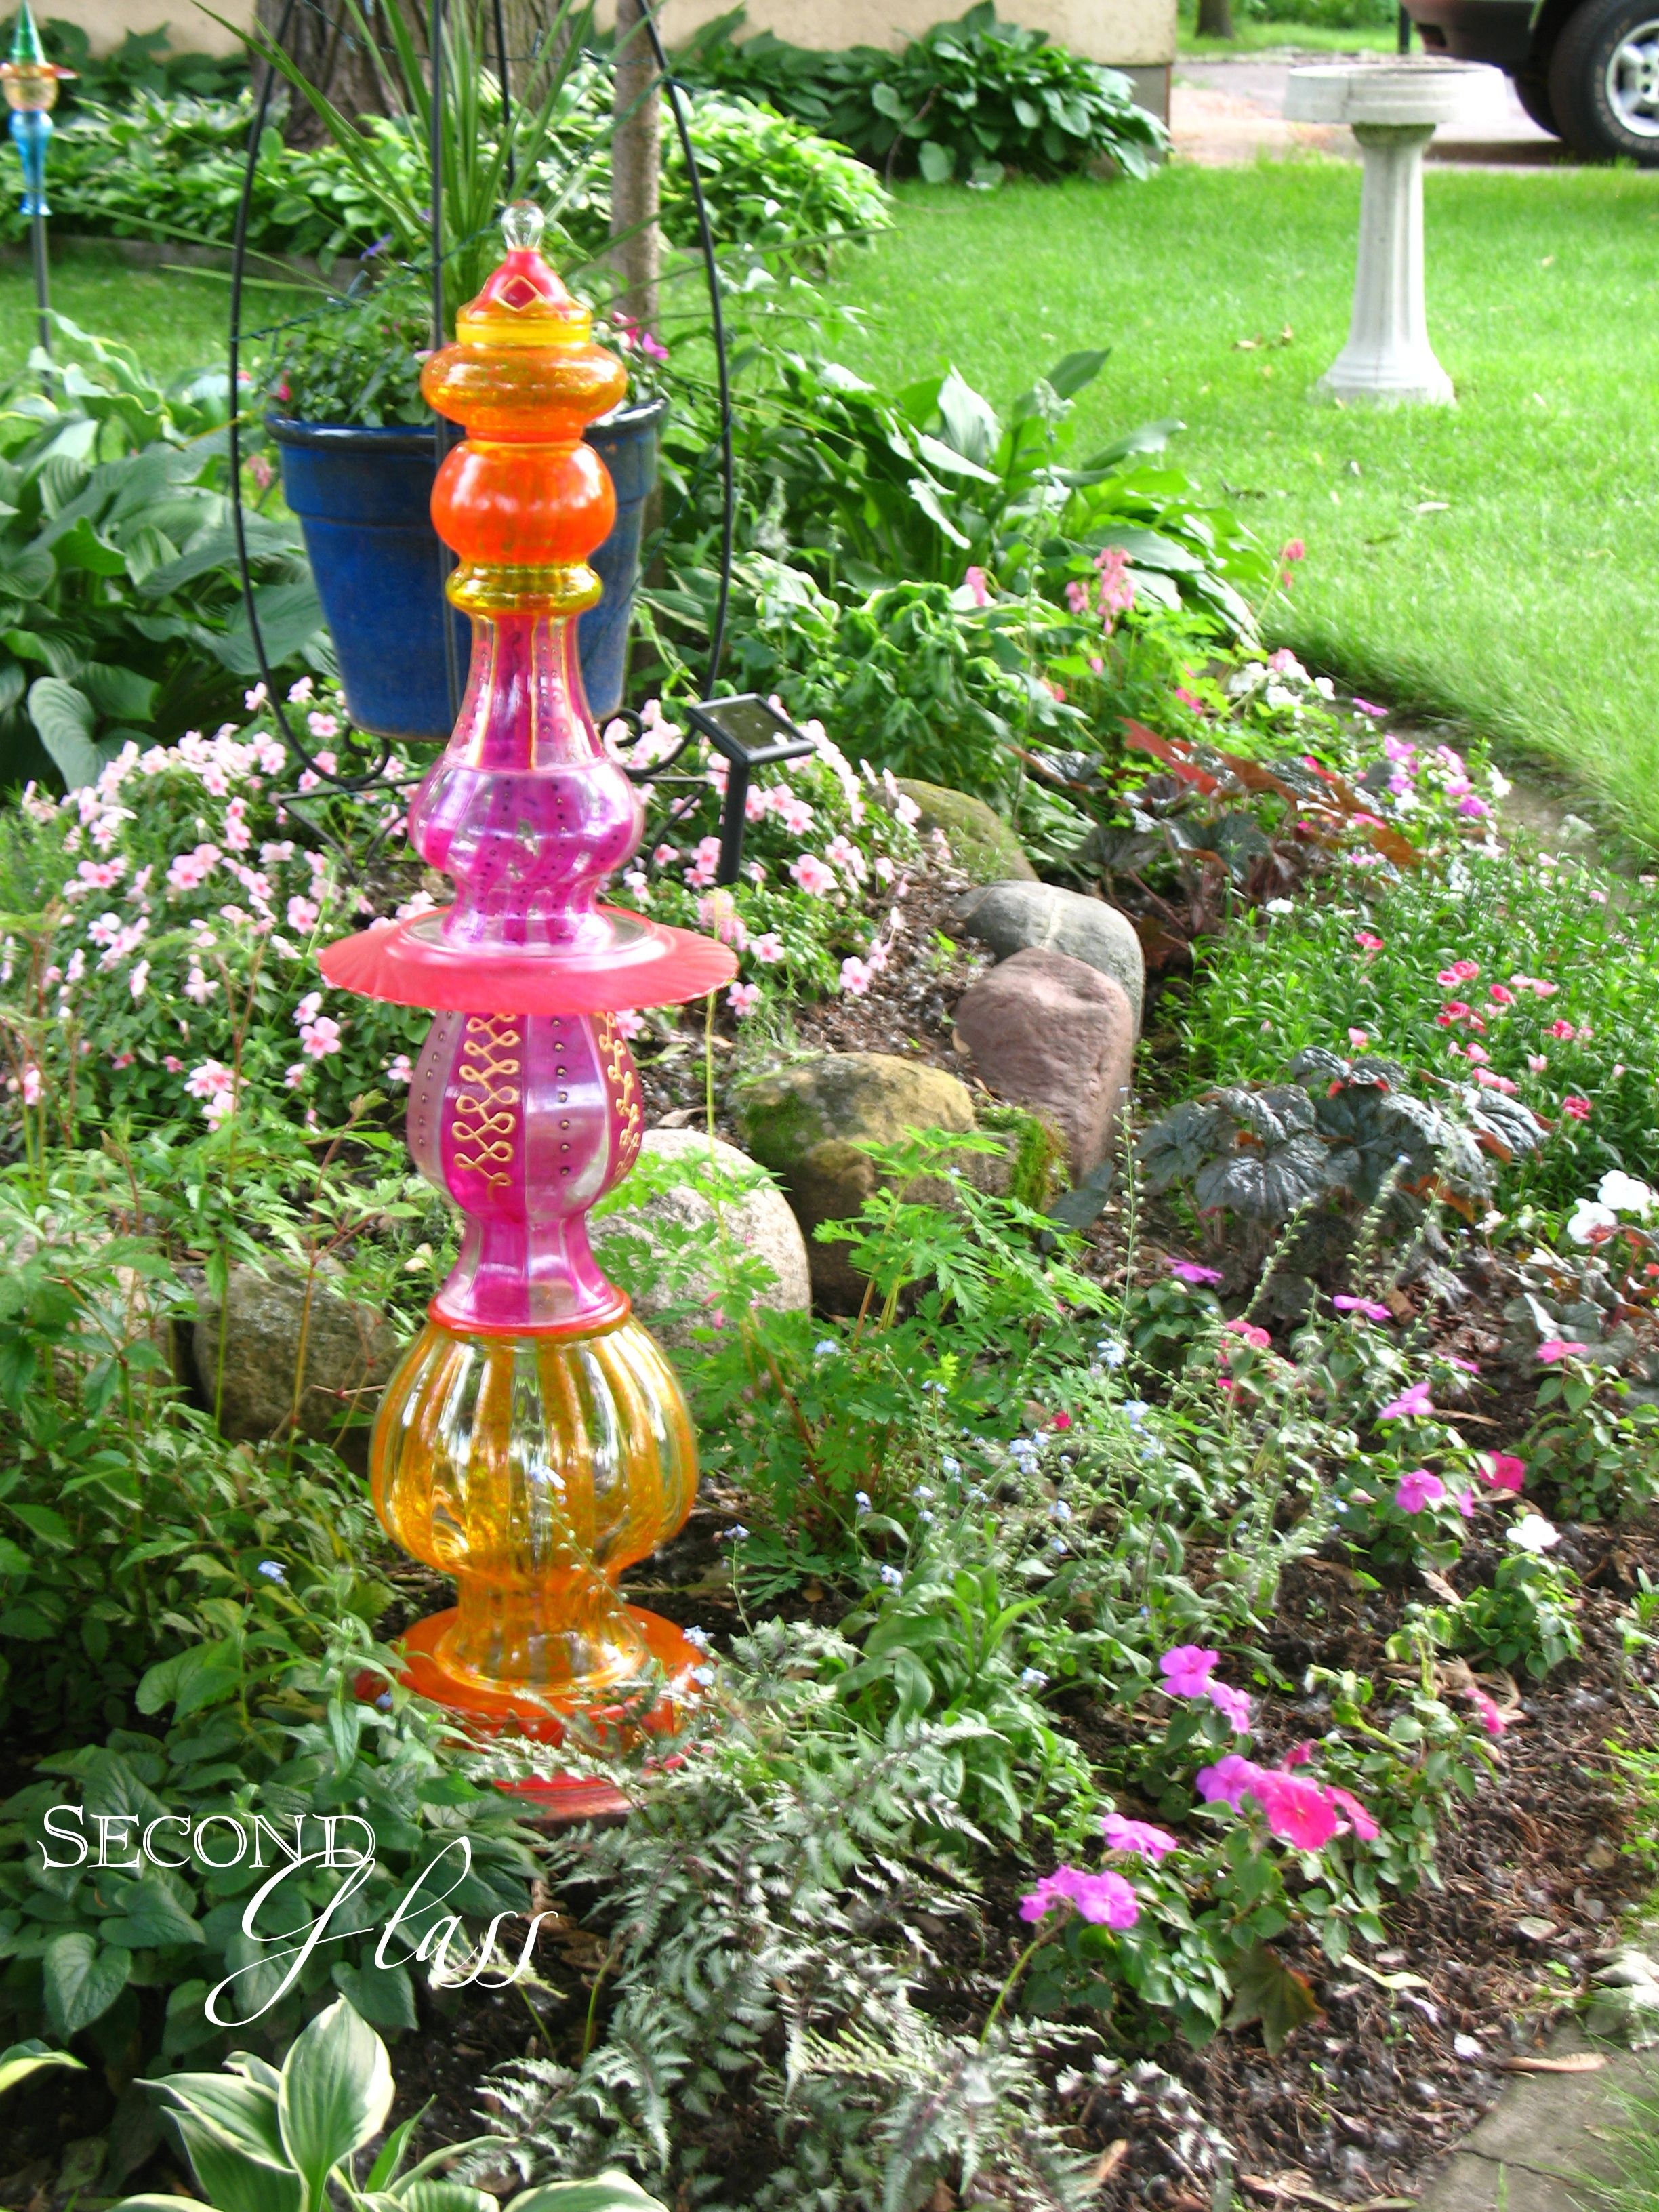 A colorful garden totem created by second glass garden art for Yard art ideas